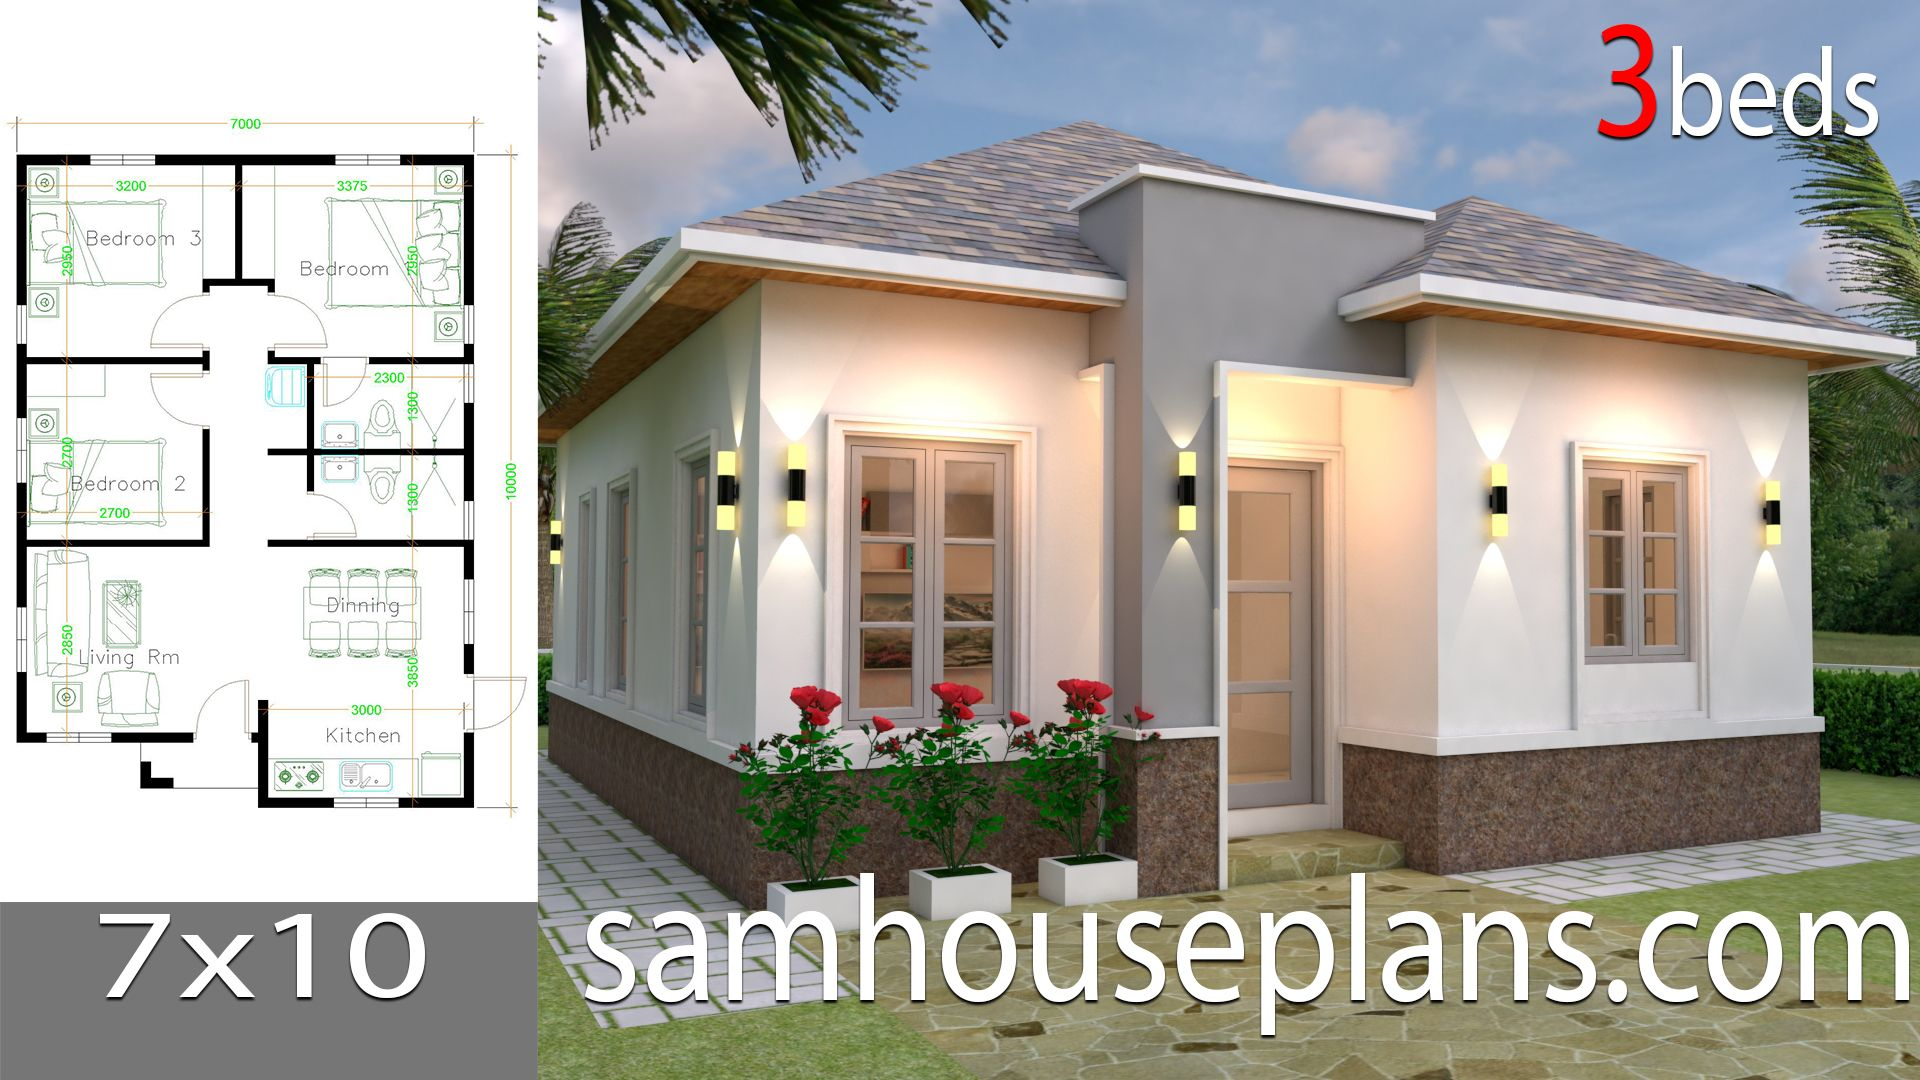 House Plans 7x10 With 3 Bedroomsthe House Has Car Parking And Garden Living Room Dining In 2020 Small House Design Plans Small House Design Architectural House Plans